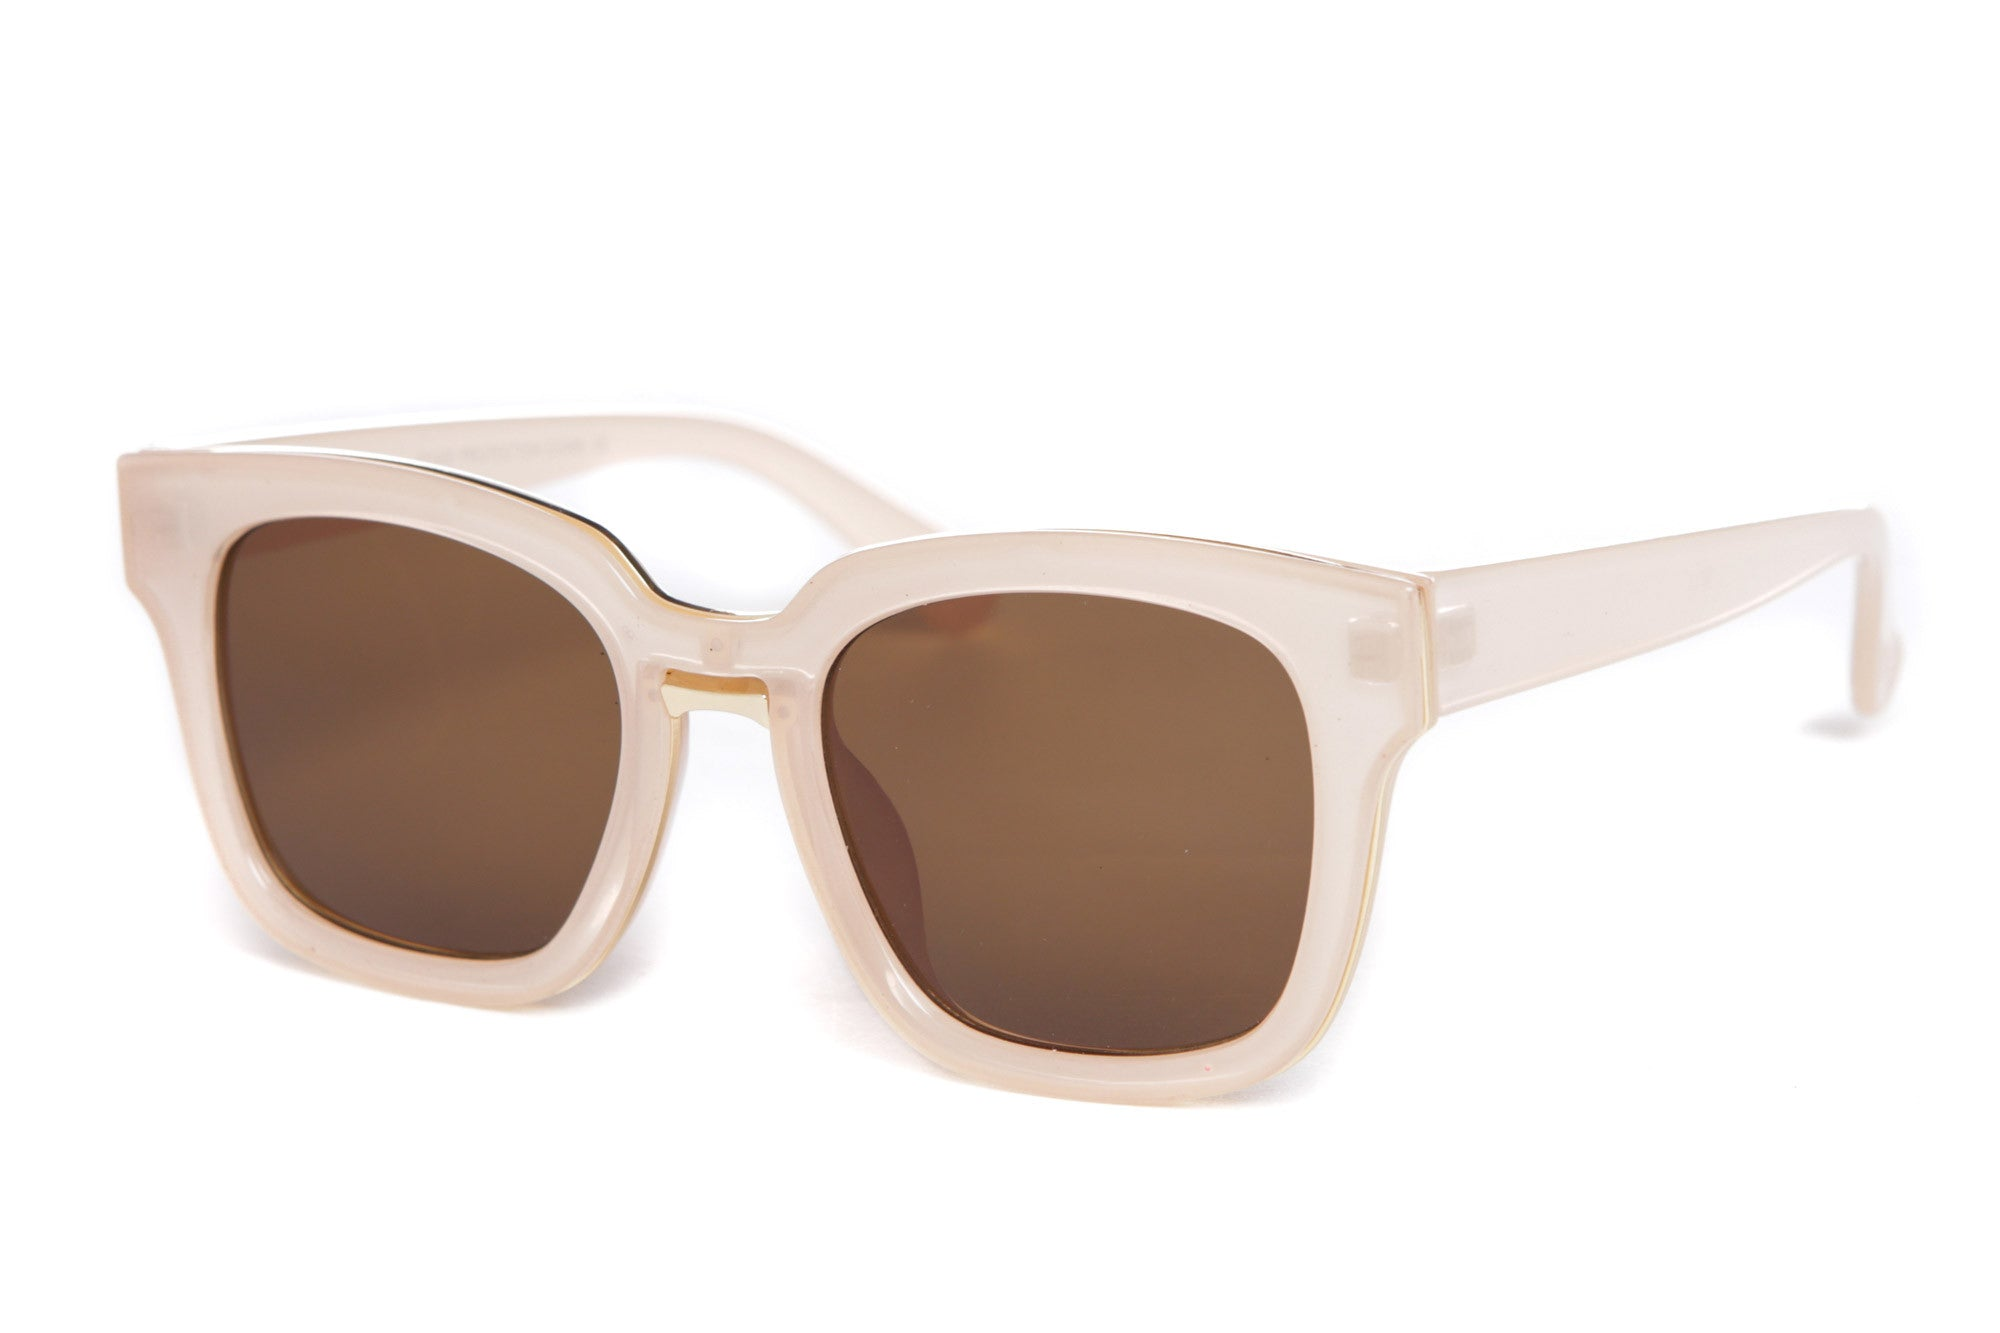 BROOKESUNGLASSES